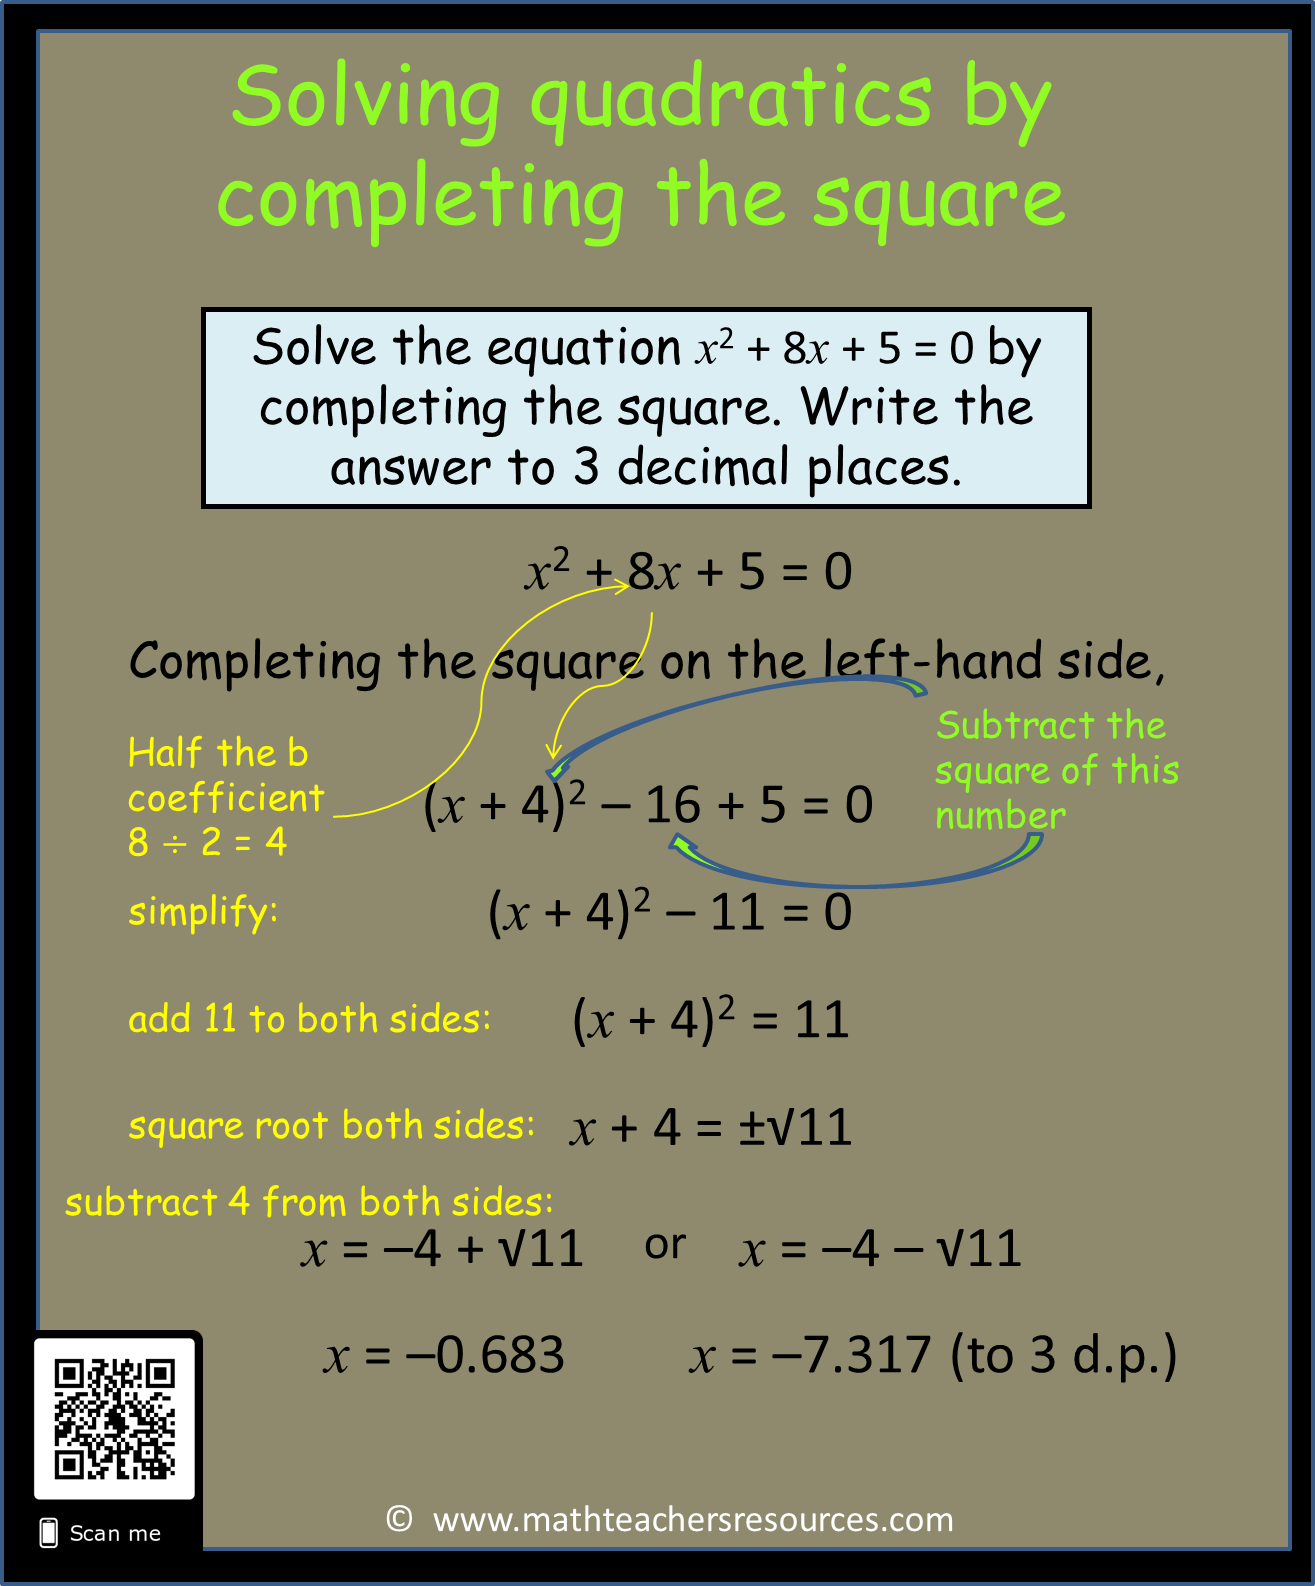 How To Solve Quadratic Equations By Completing The Square Math Infographic Solving Quadratic Equations Quadratics Math Infographic [ 1586 x 1315 Pixel ]